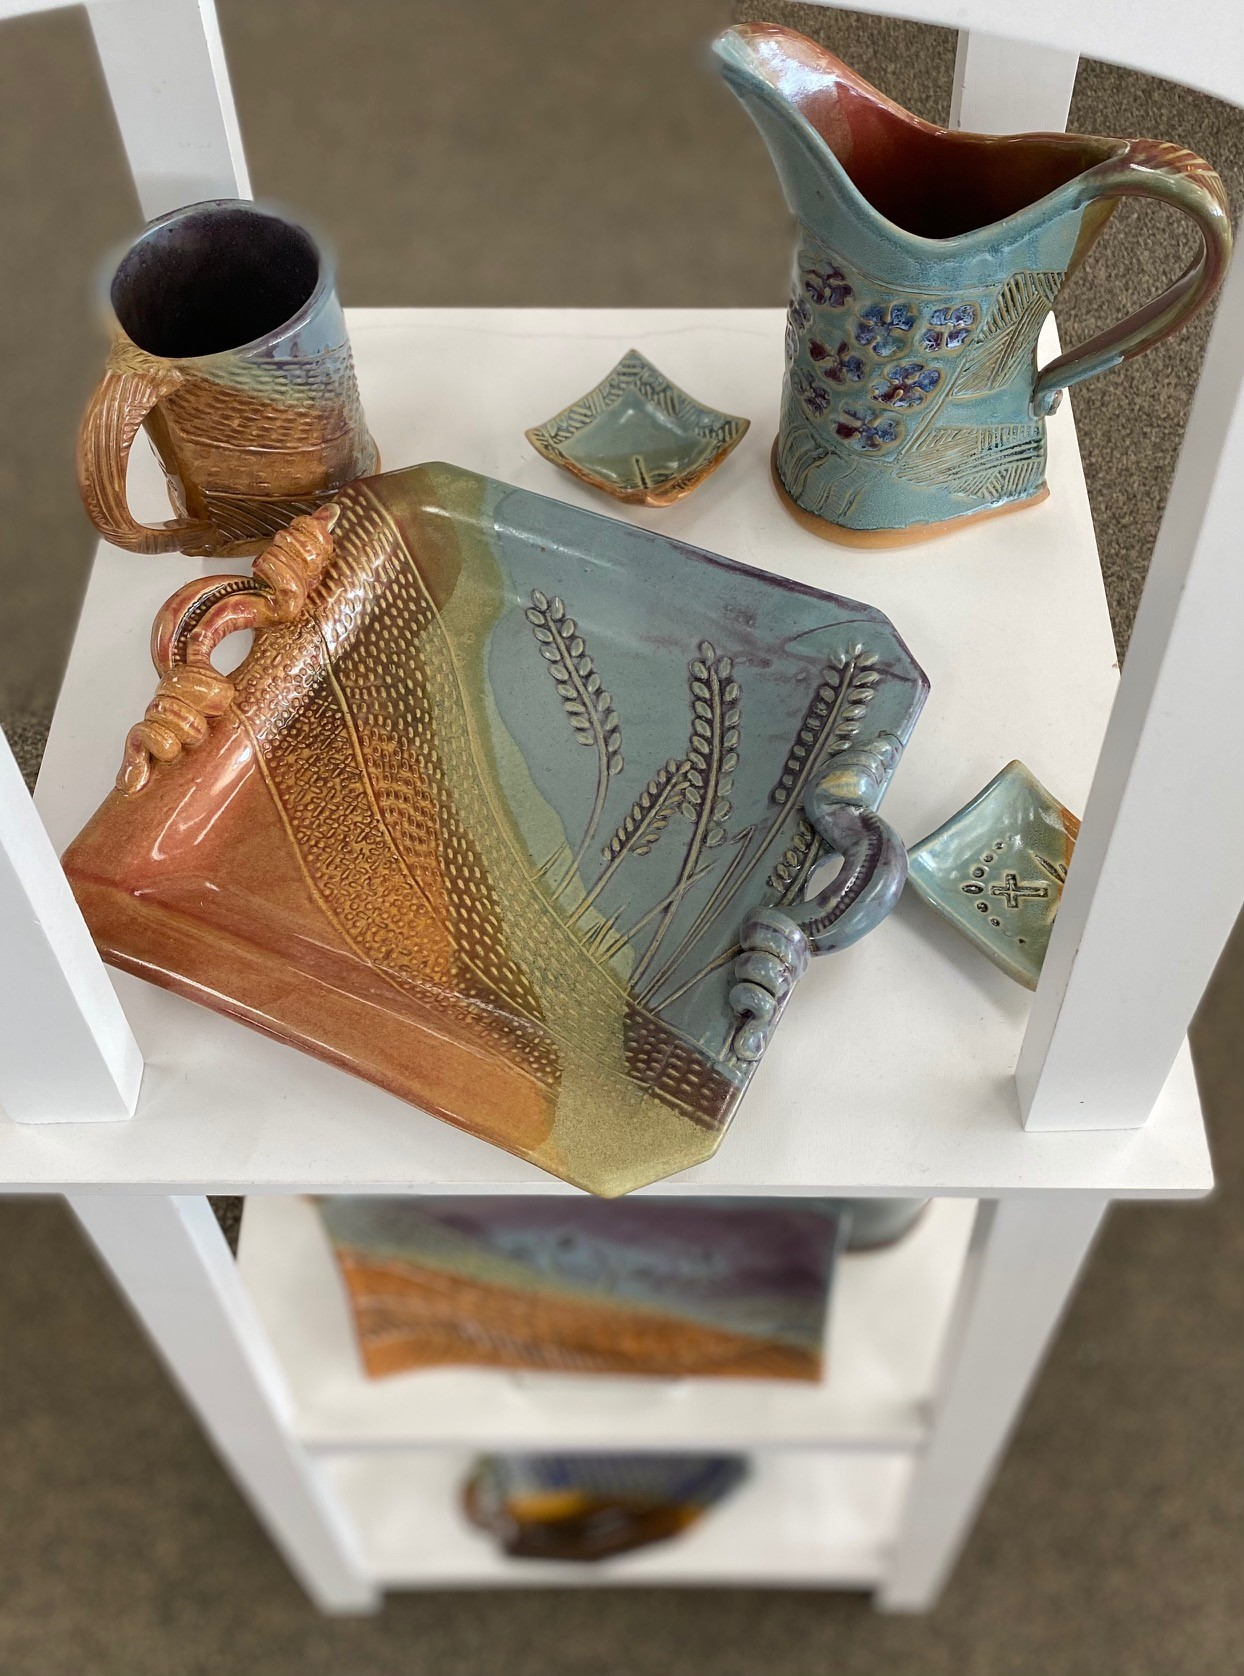 Gifts - Local Pottery at Daltons Christian Books